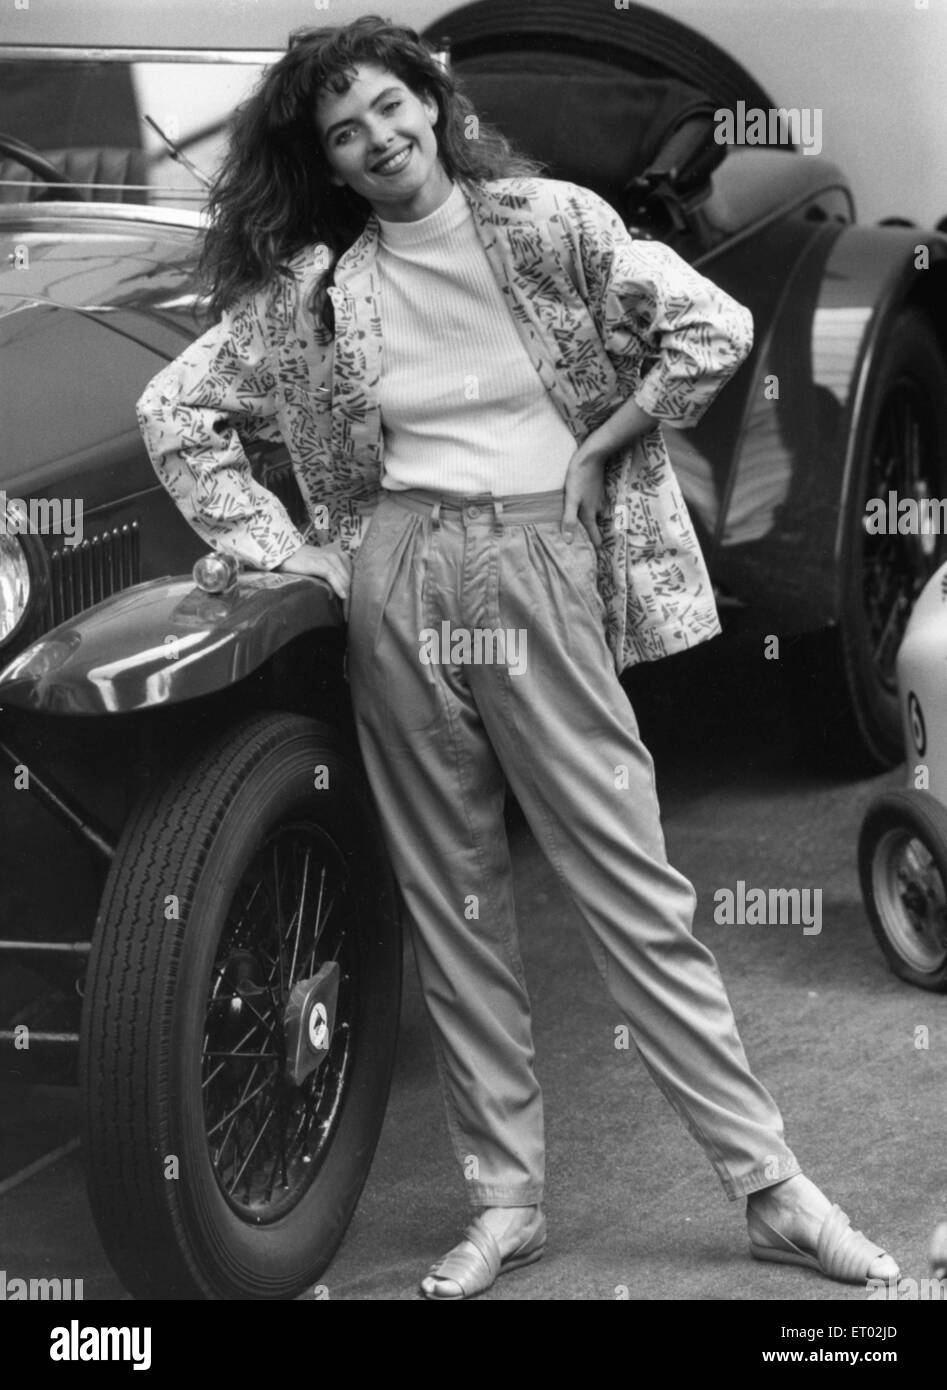 1980s Fashion Model Wears Apple Green Trousers With White Pattern Jacket Standing Beside A